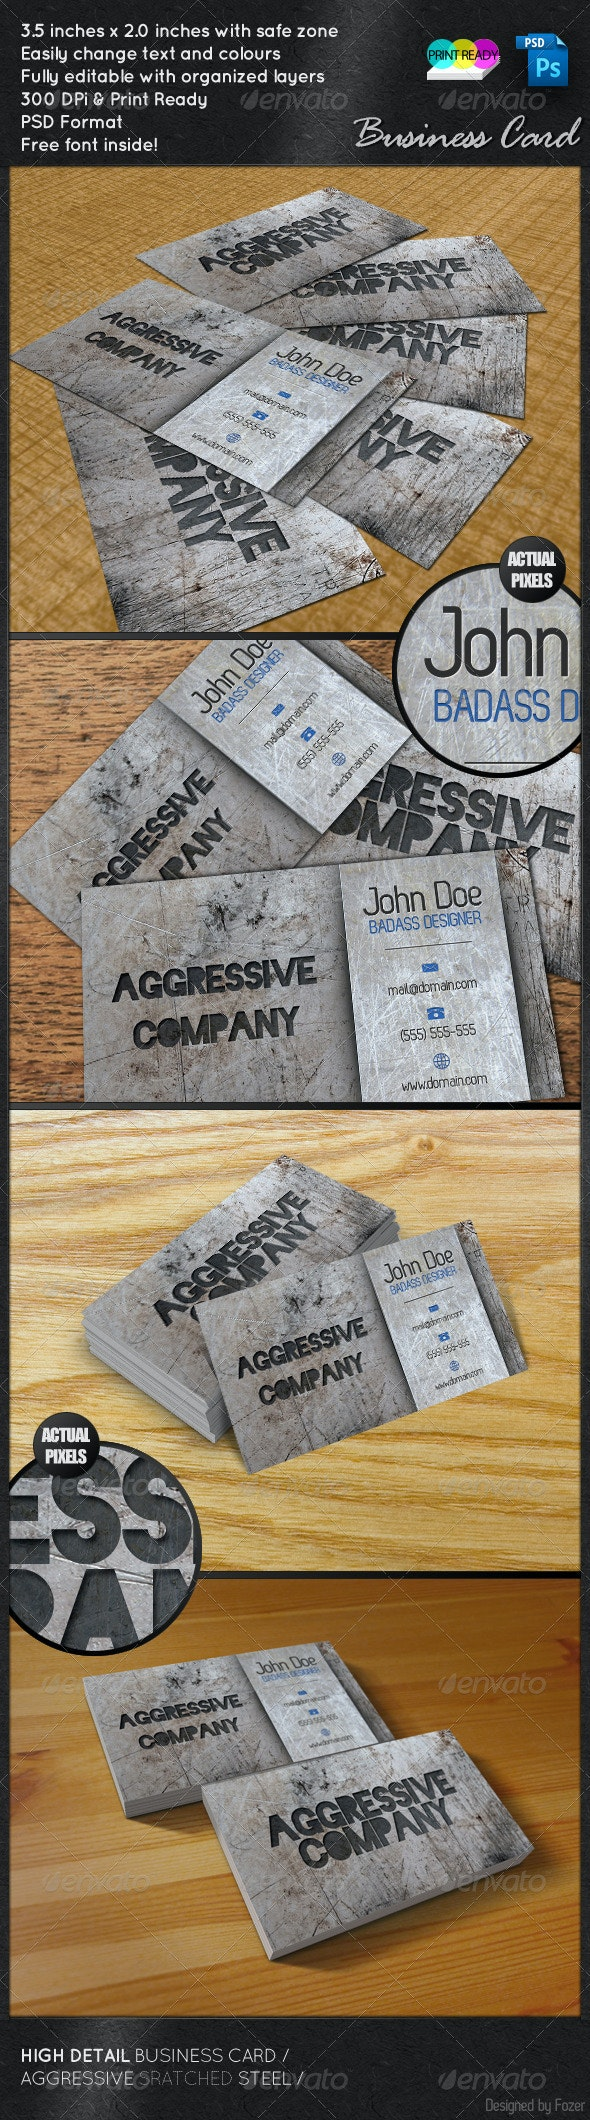 Aggressive Company Steel - Grunge Business Cards